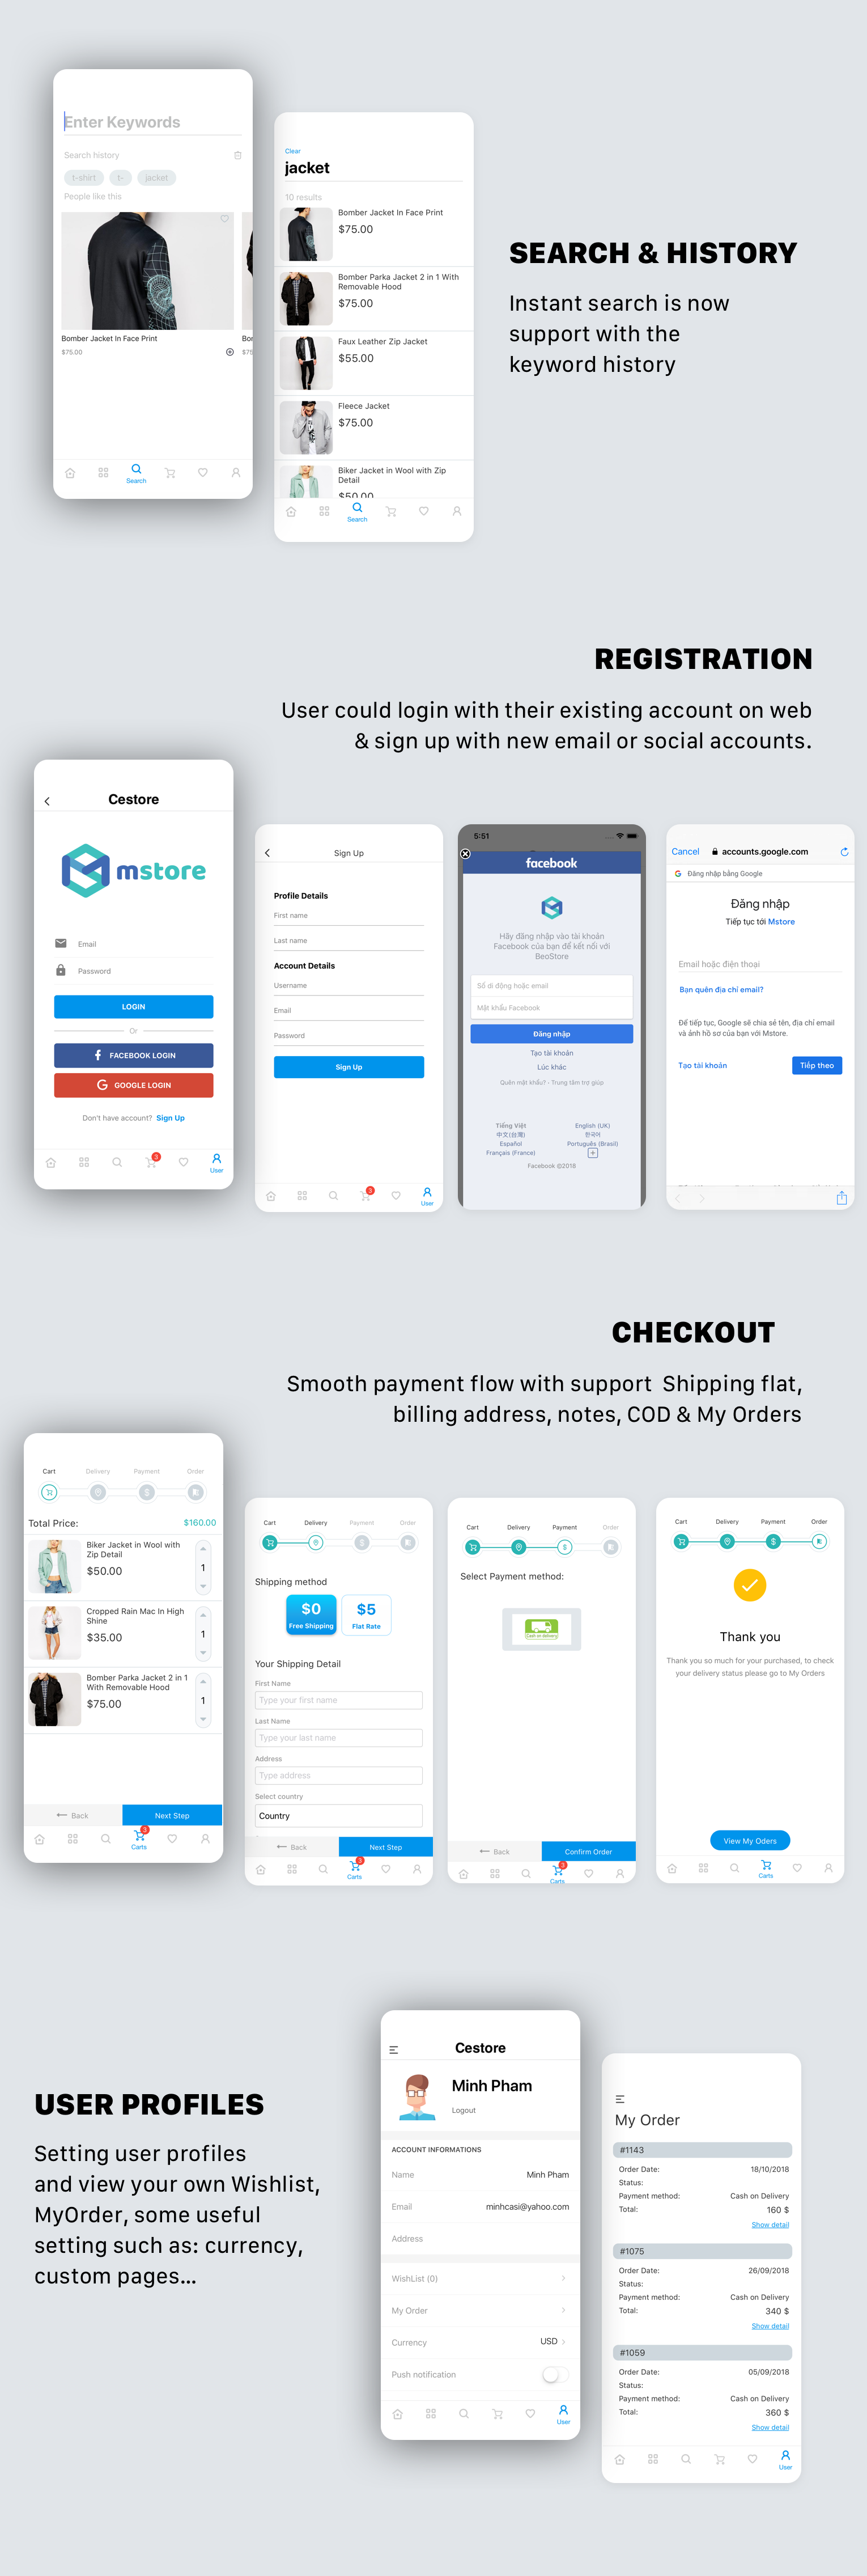 CeStore - ReactJS web app & React Native mobile app for e-commerce - 6